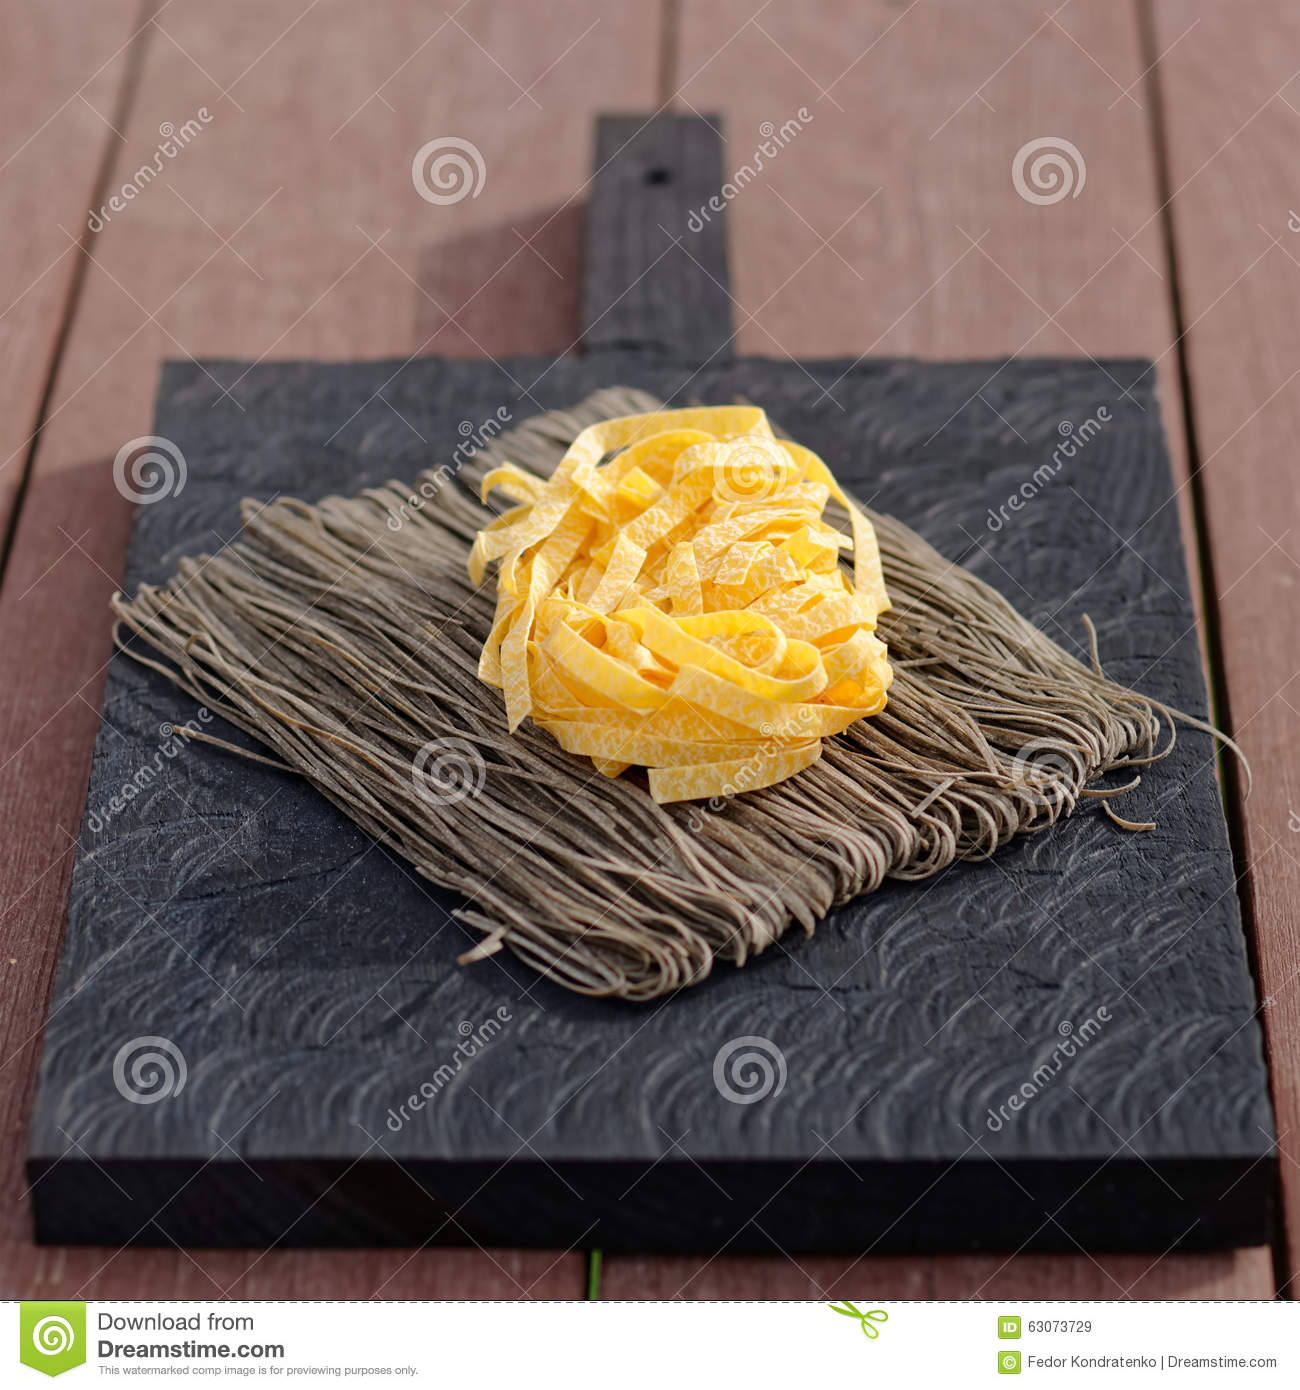 Different Types Of Cutting Boards Two Types Of Pasta On Old Cutting Board Stock Photo